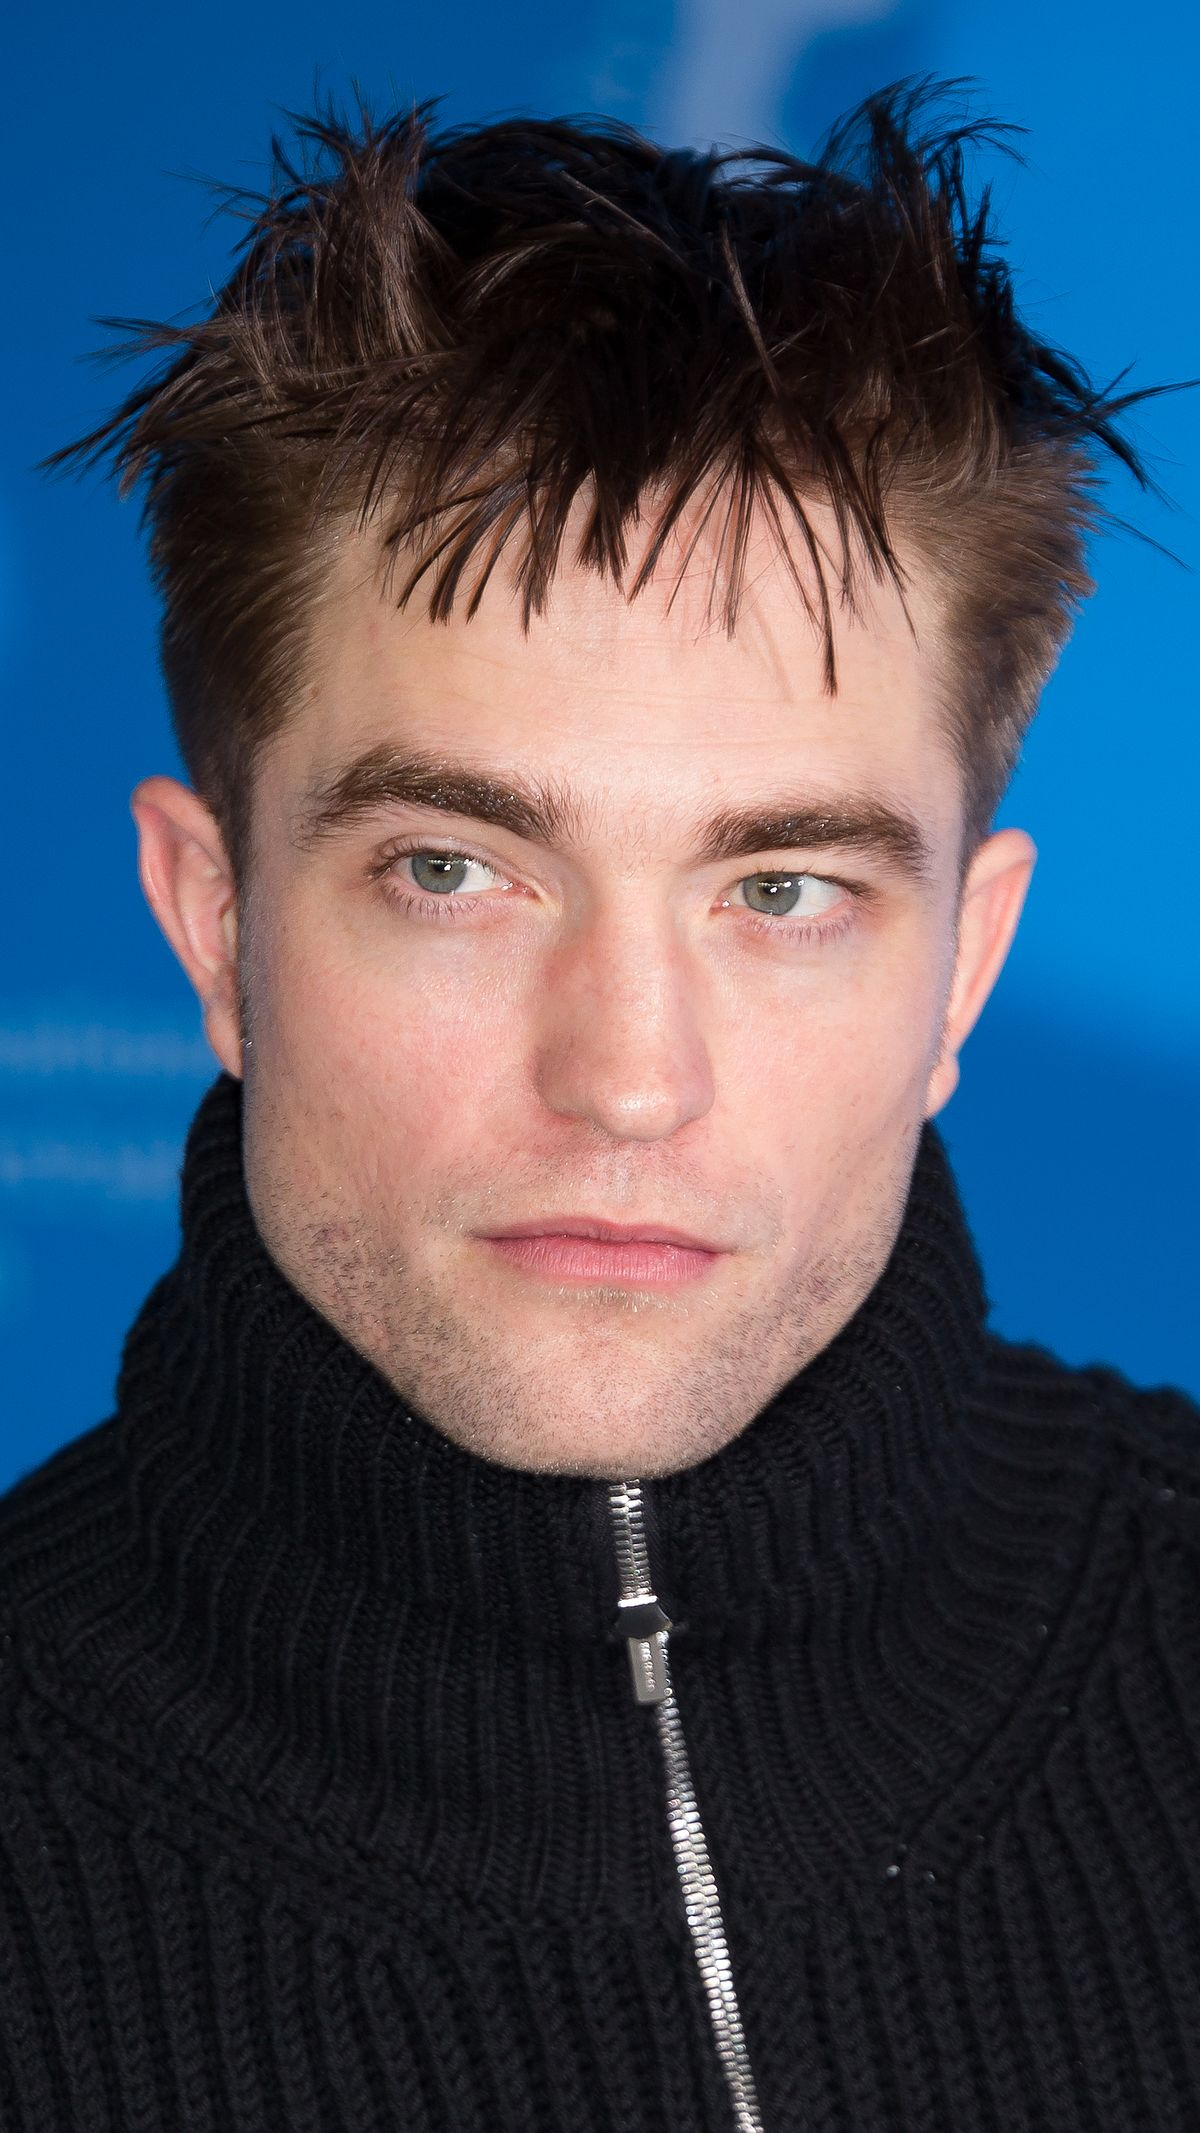 Berlin City Auto >> Robert Pattinson - Wikipedia